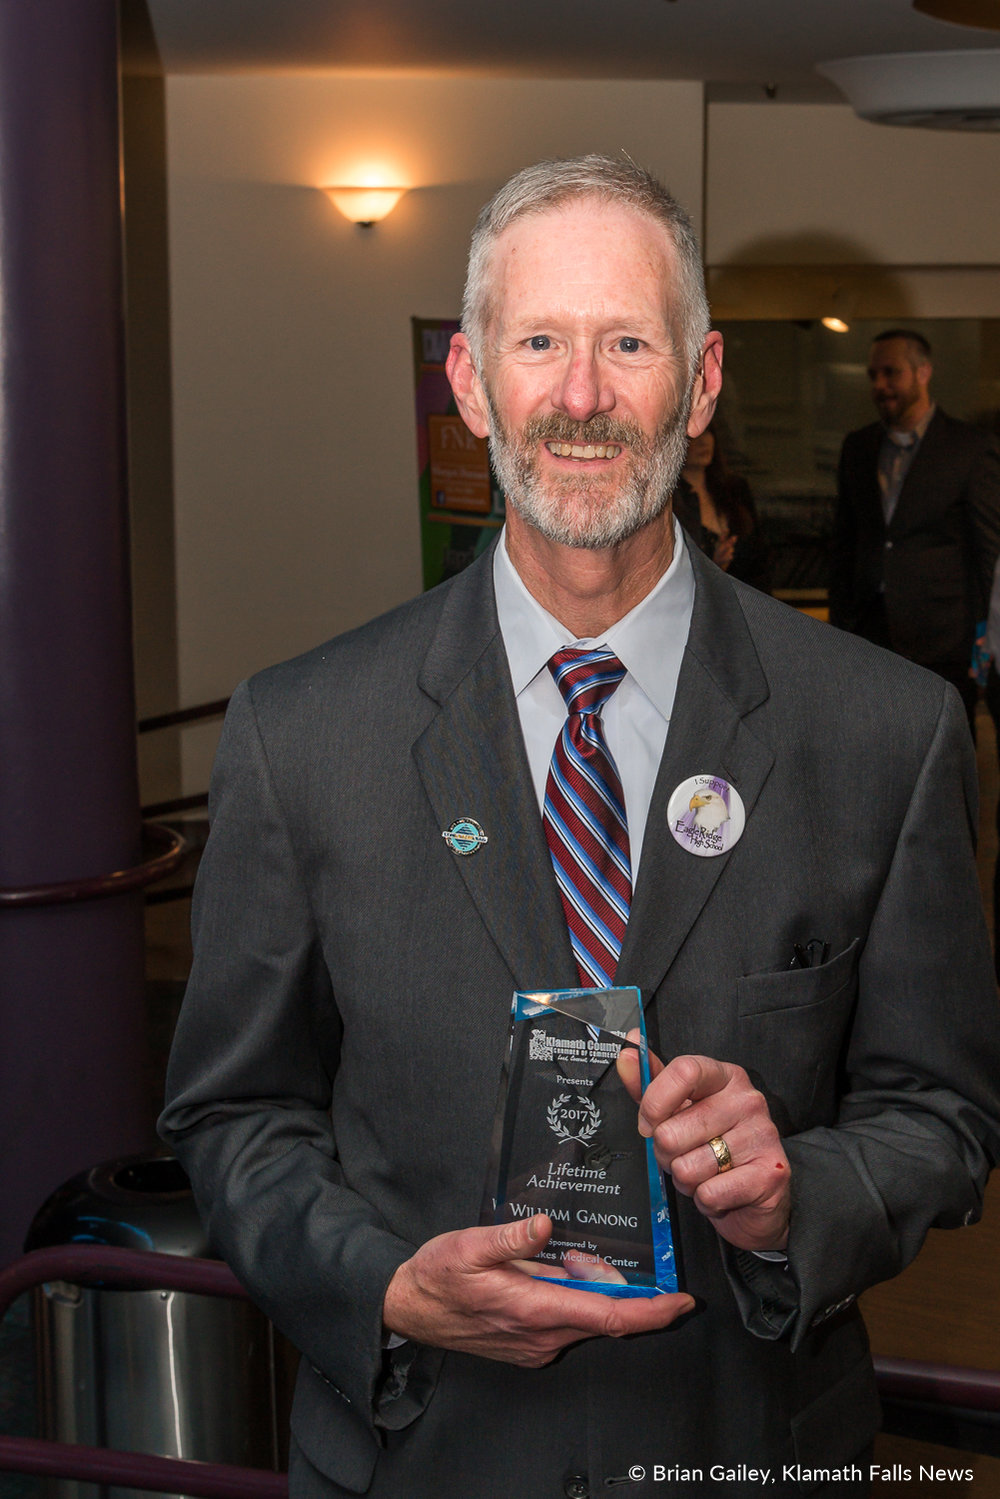 William Ganong stands with his Lifetime Achievement Award following the 97th Annual Chamber Gala Awards. (Brian Gailey)